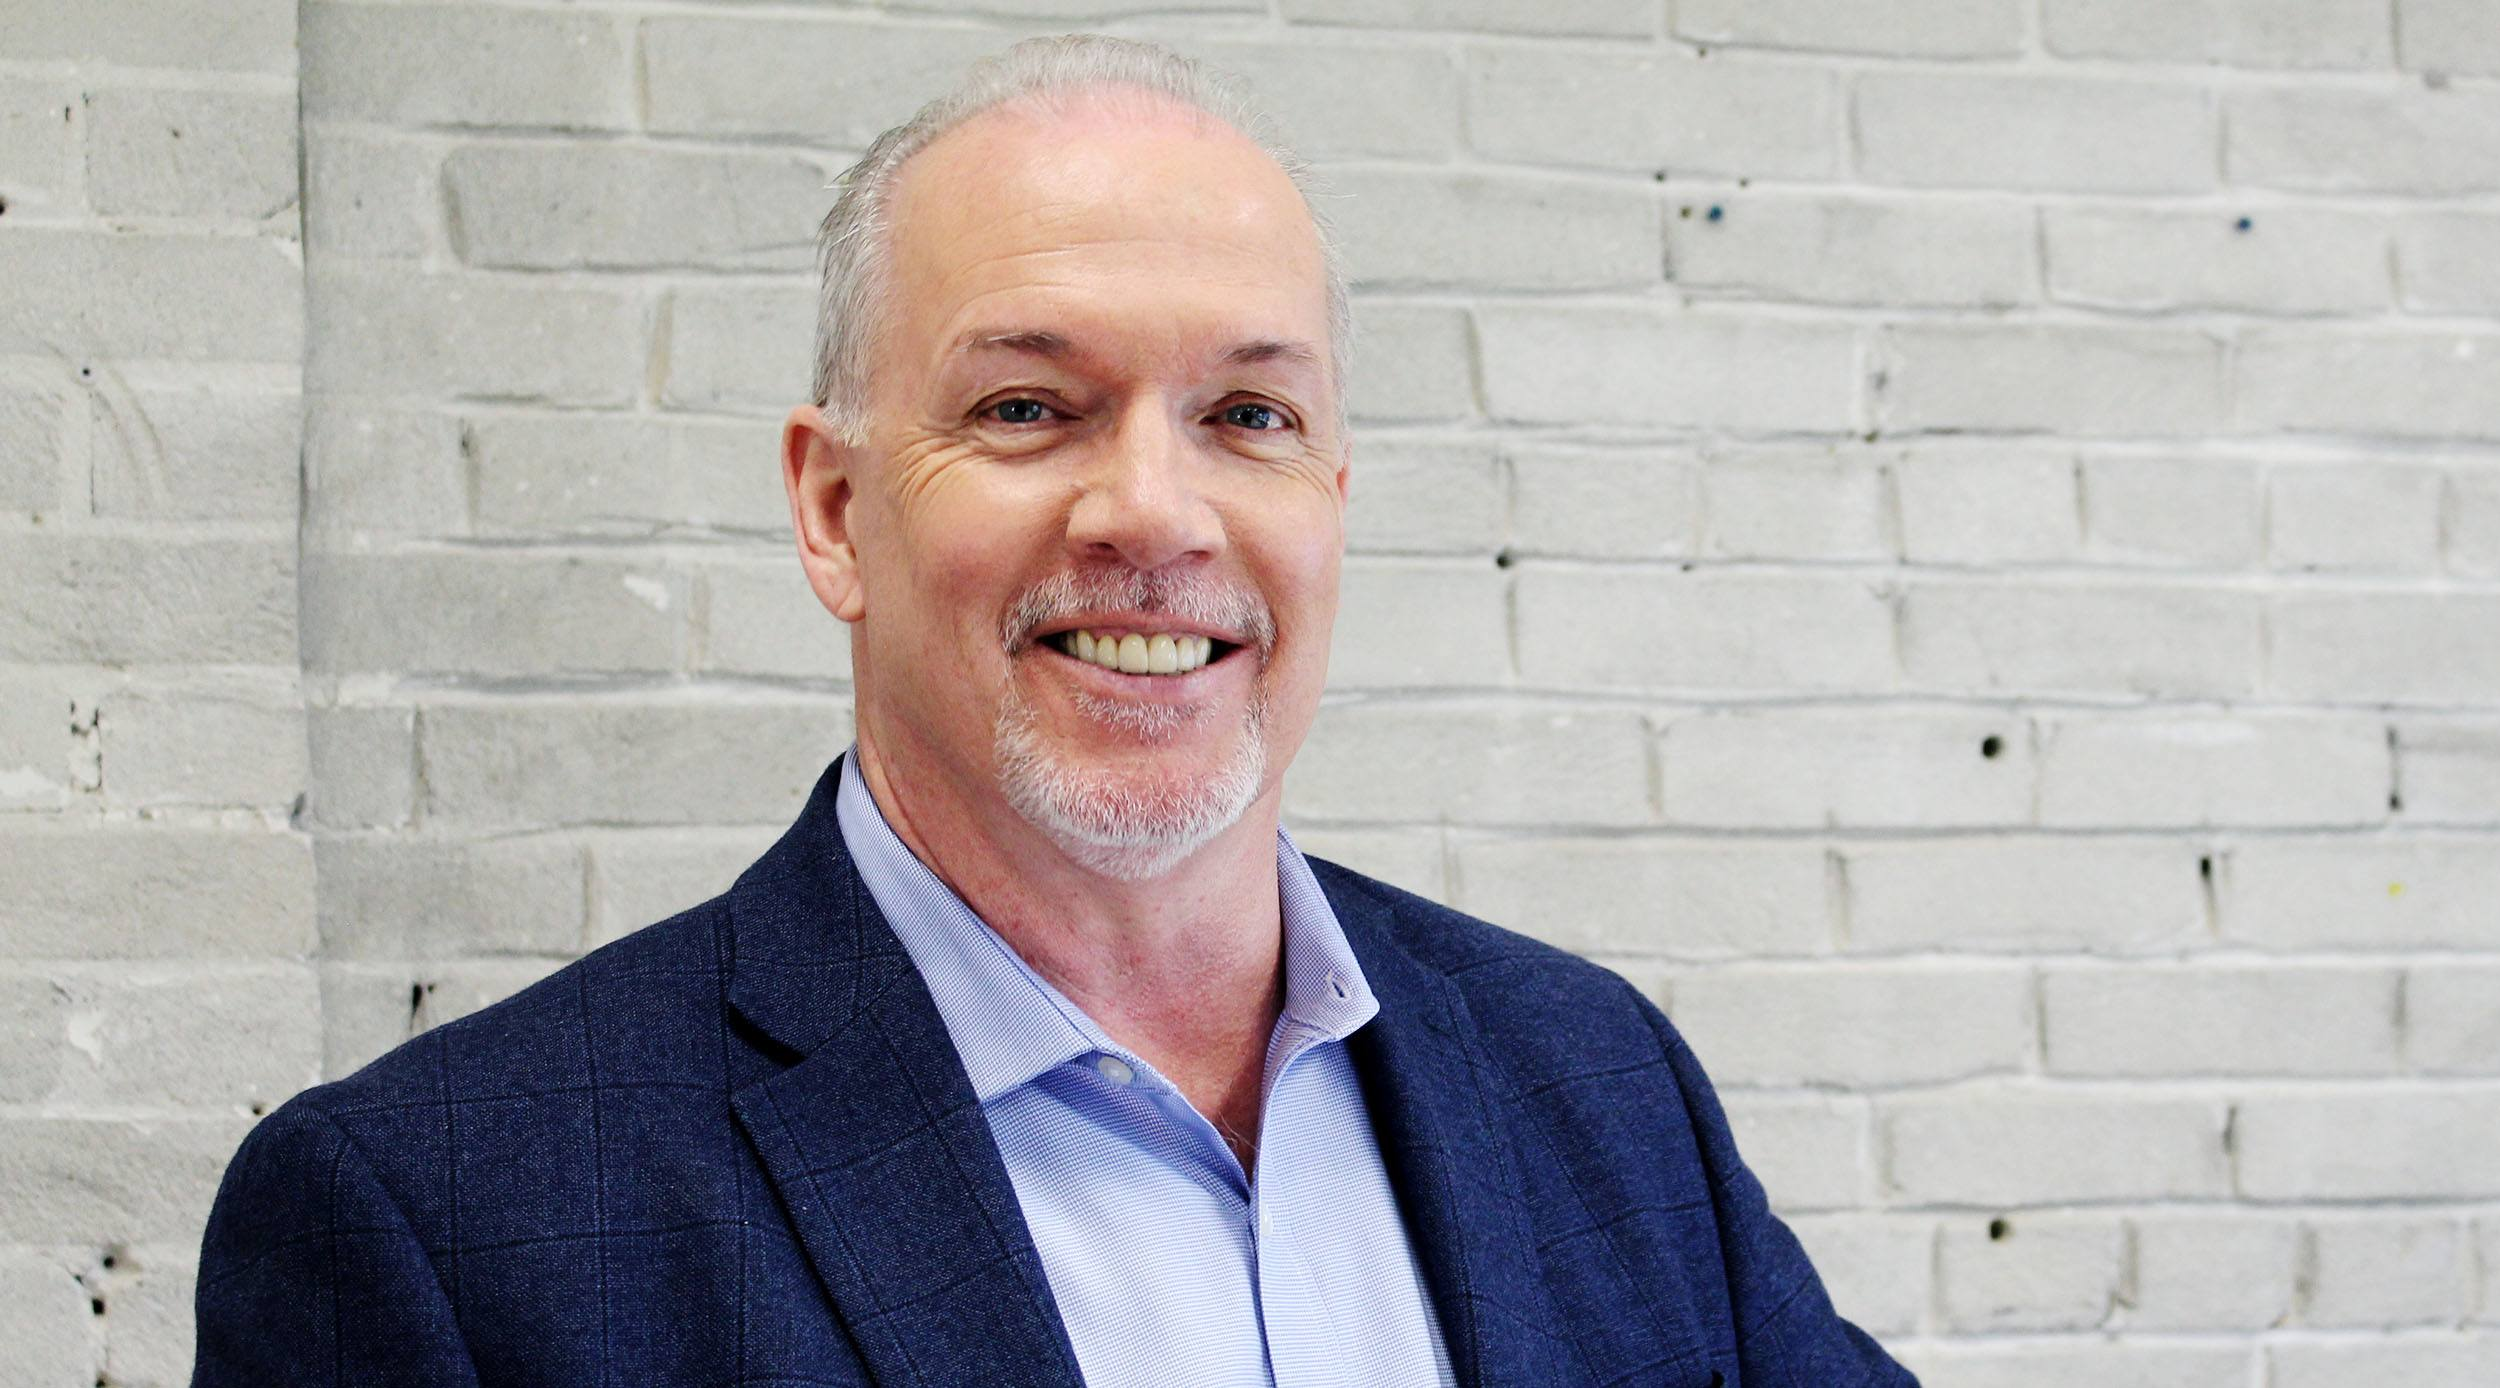 BC NDP leader John Horgan: I believe that people want change